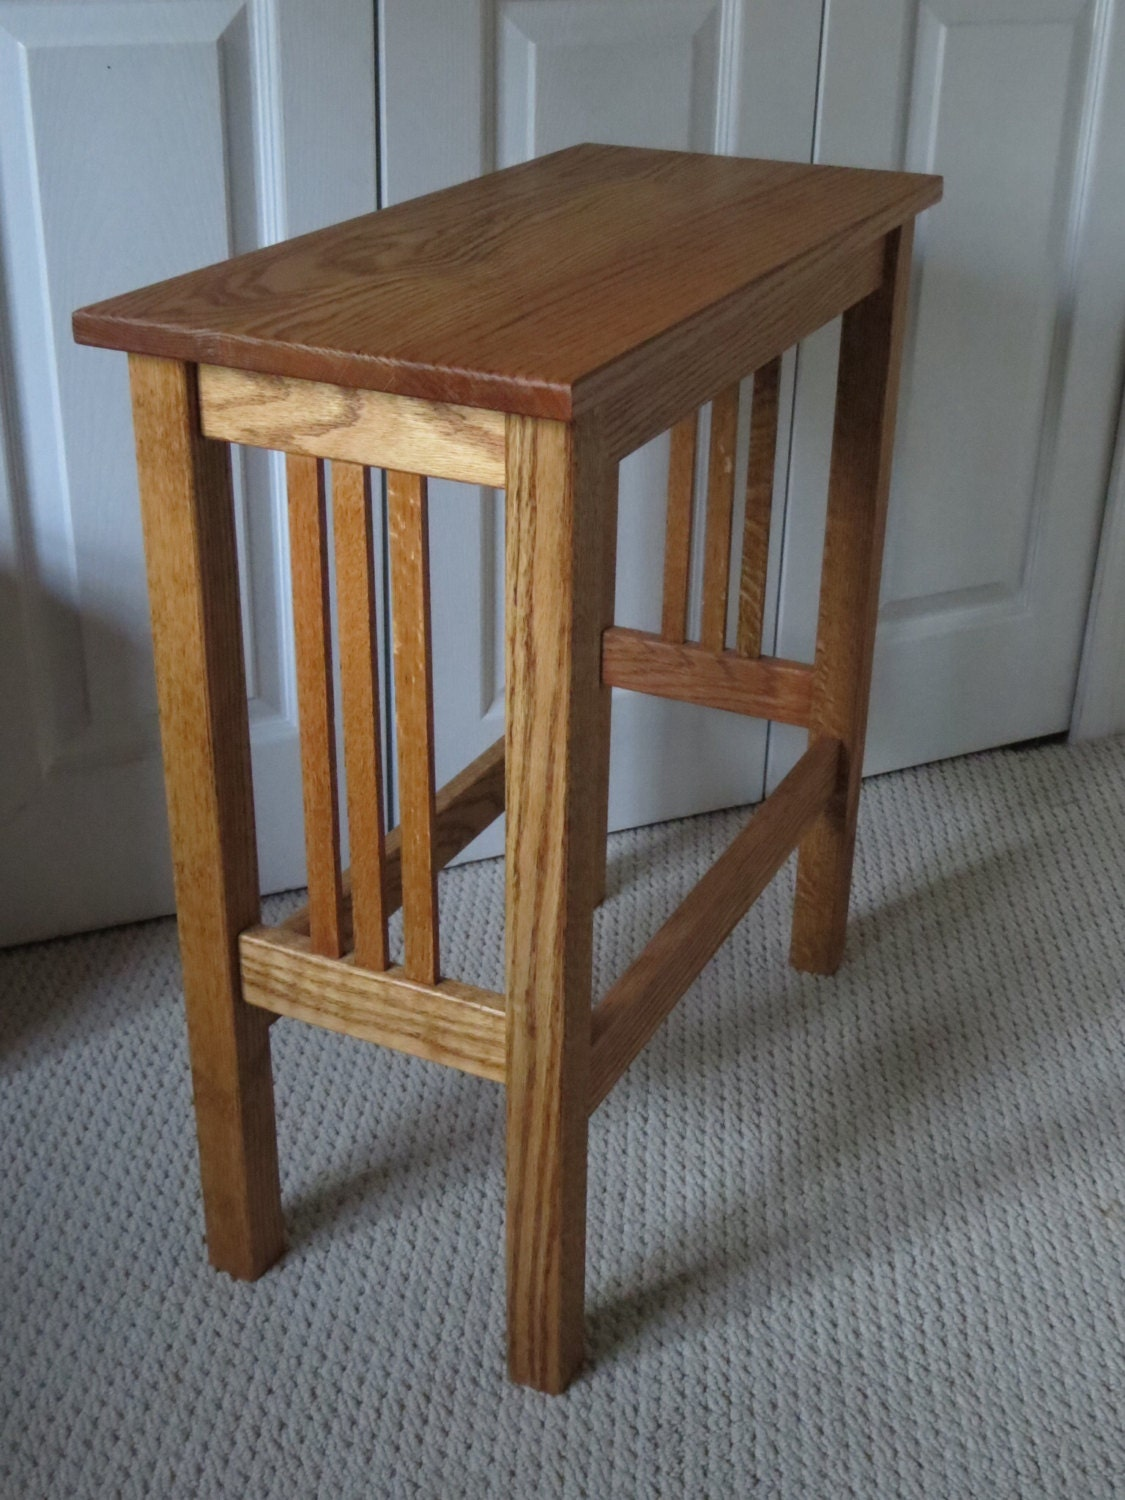 Items similar to Mission Style End Table, Side Table on Etsy